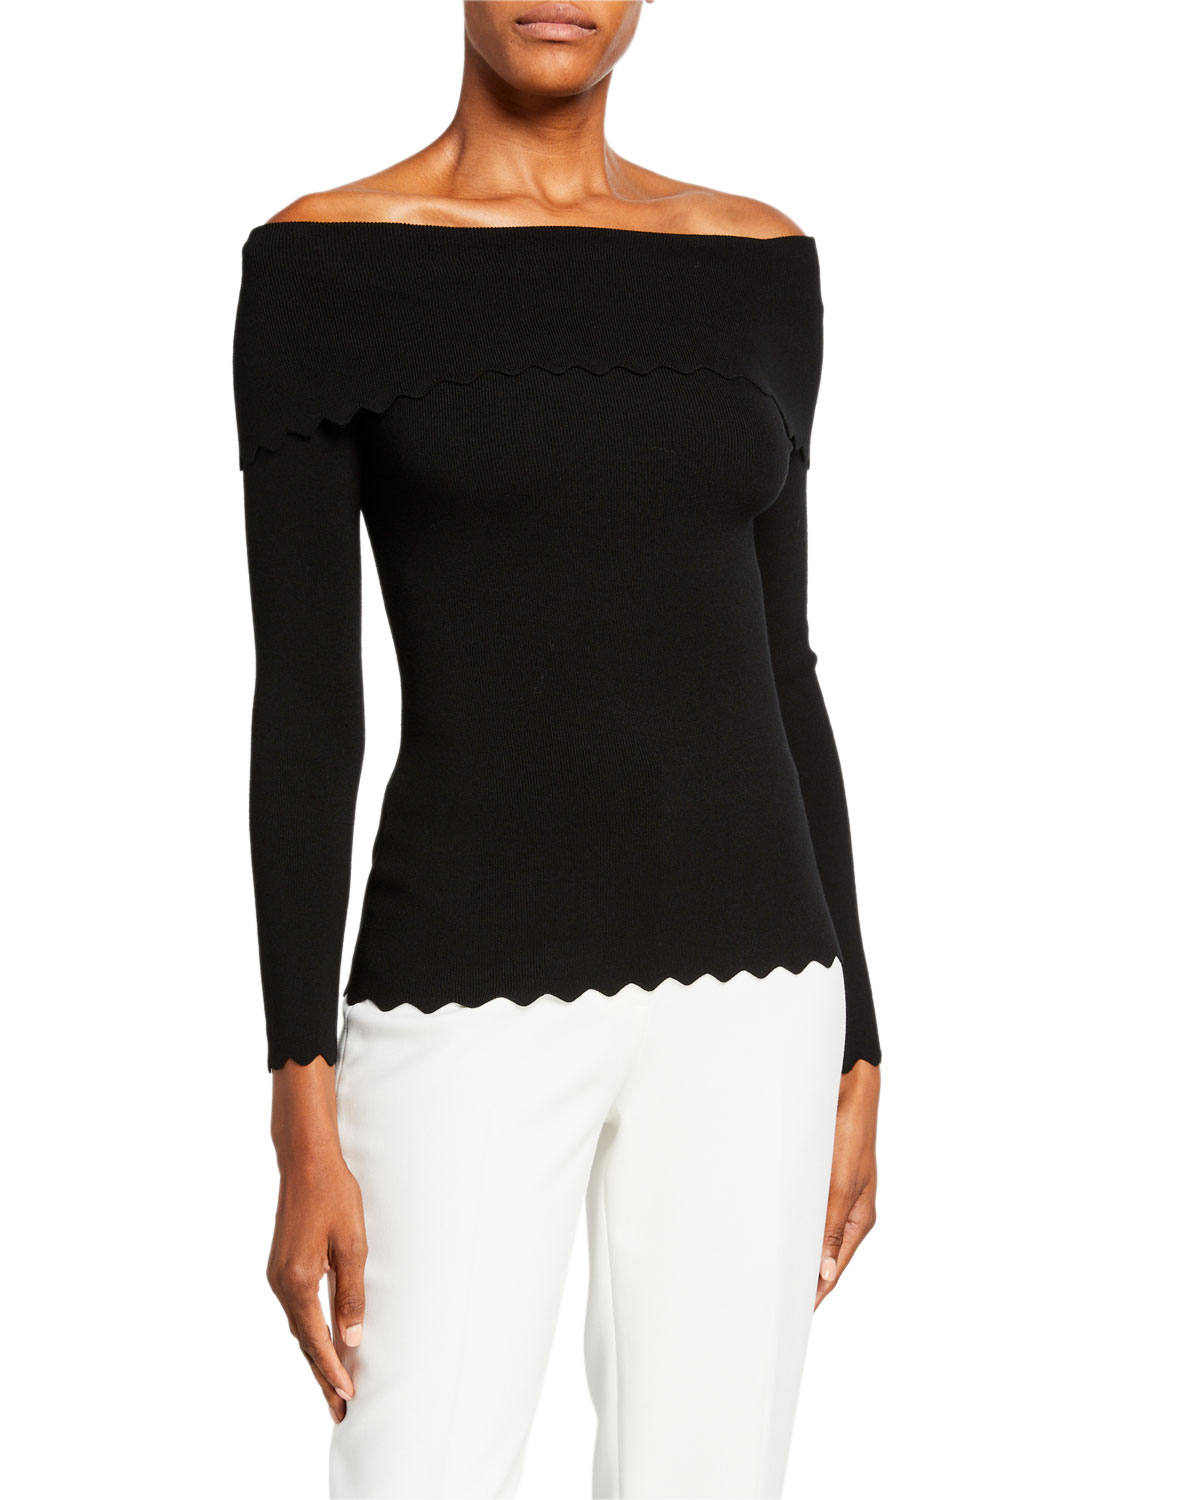 Milly Tops FOLDOVER OFF-THE-SHOULDER LONG-SLEEVE SCALLOP TOP